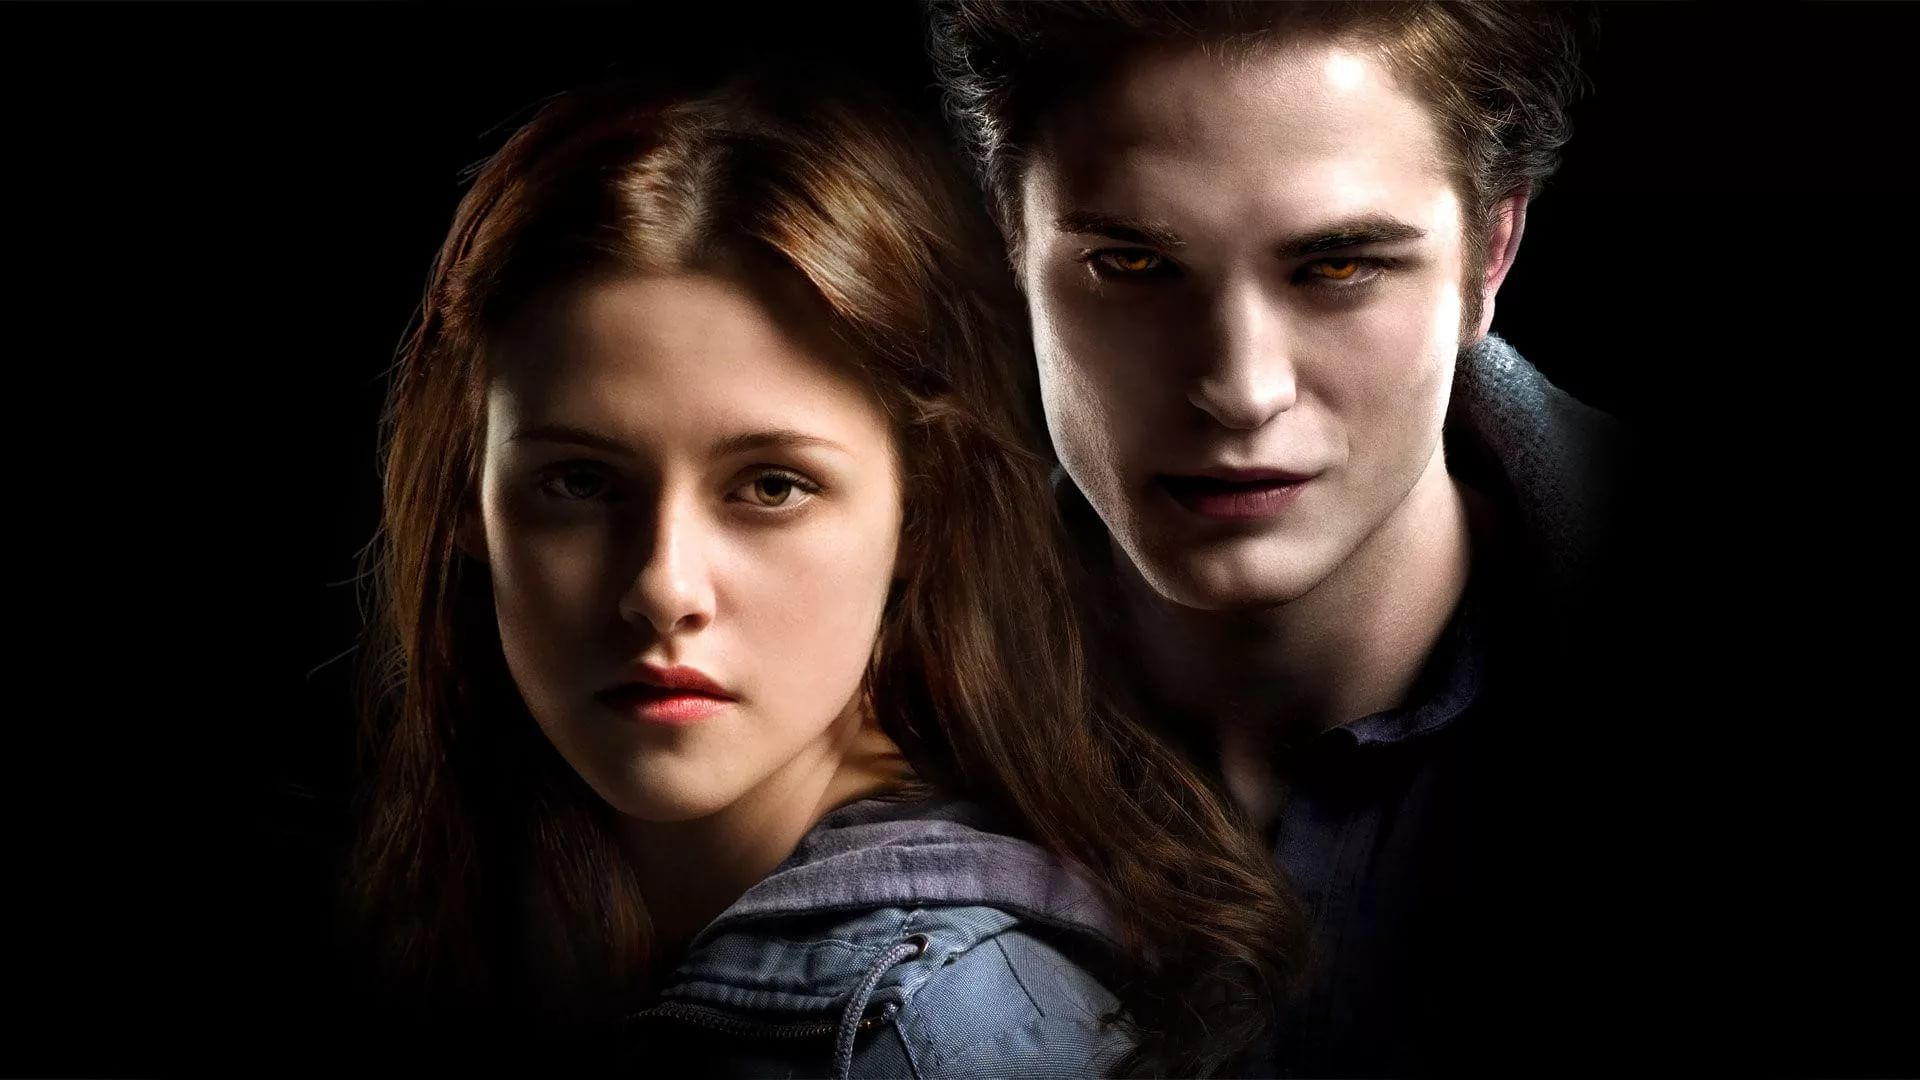 Twilight Saga hd wallpaper for laptop